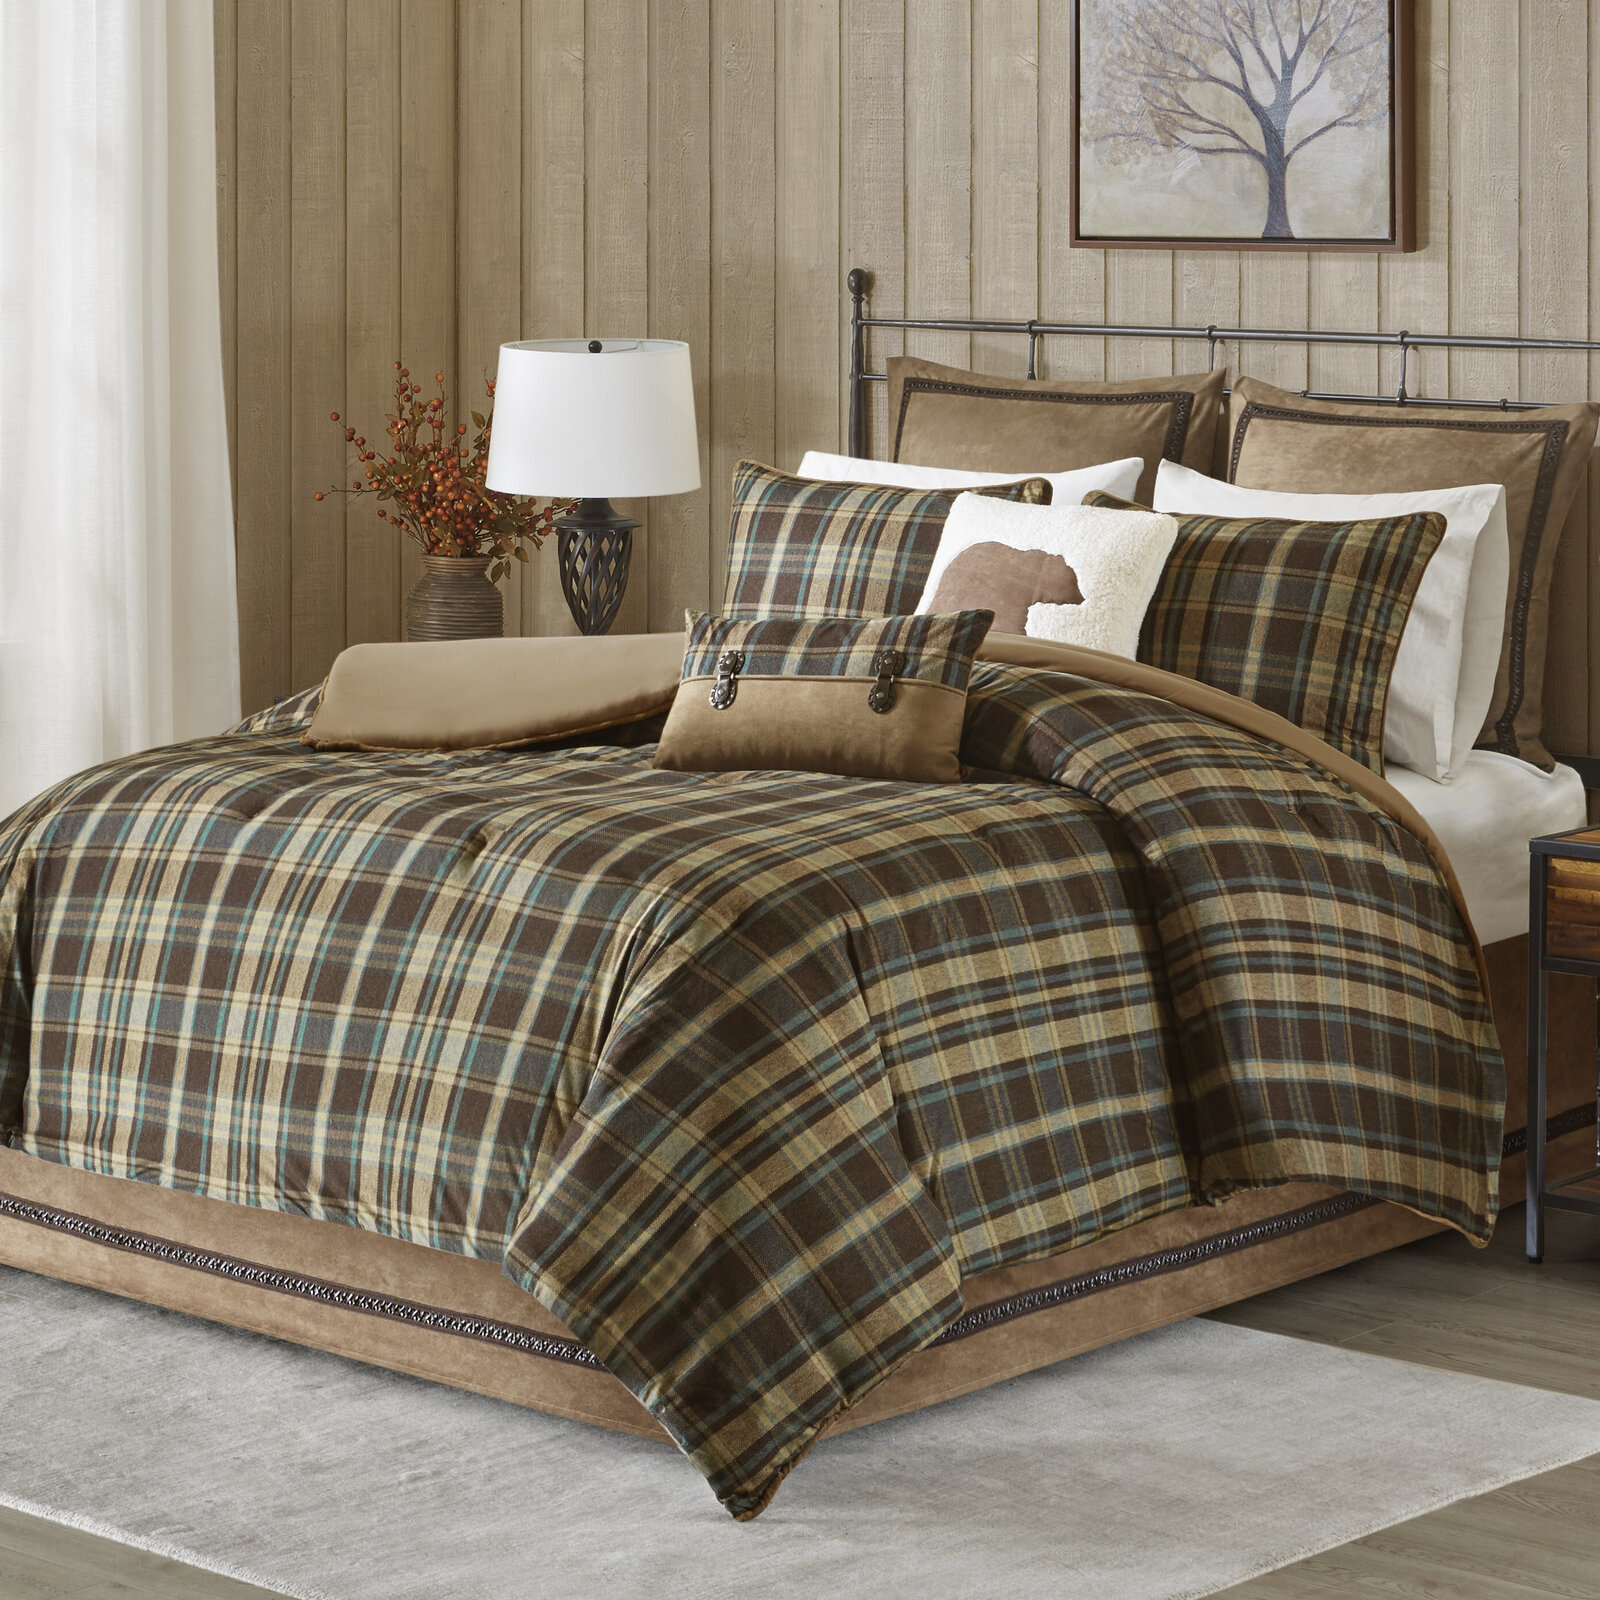 Image result for BROWN AND GREEN PLAID BEDSPREAD